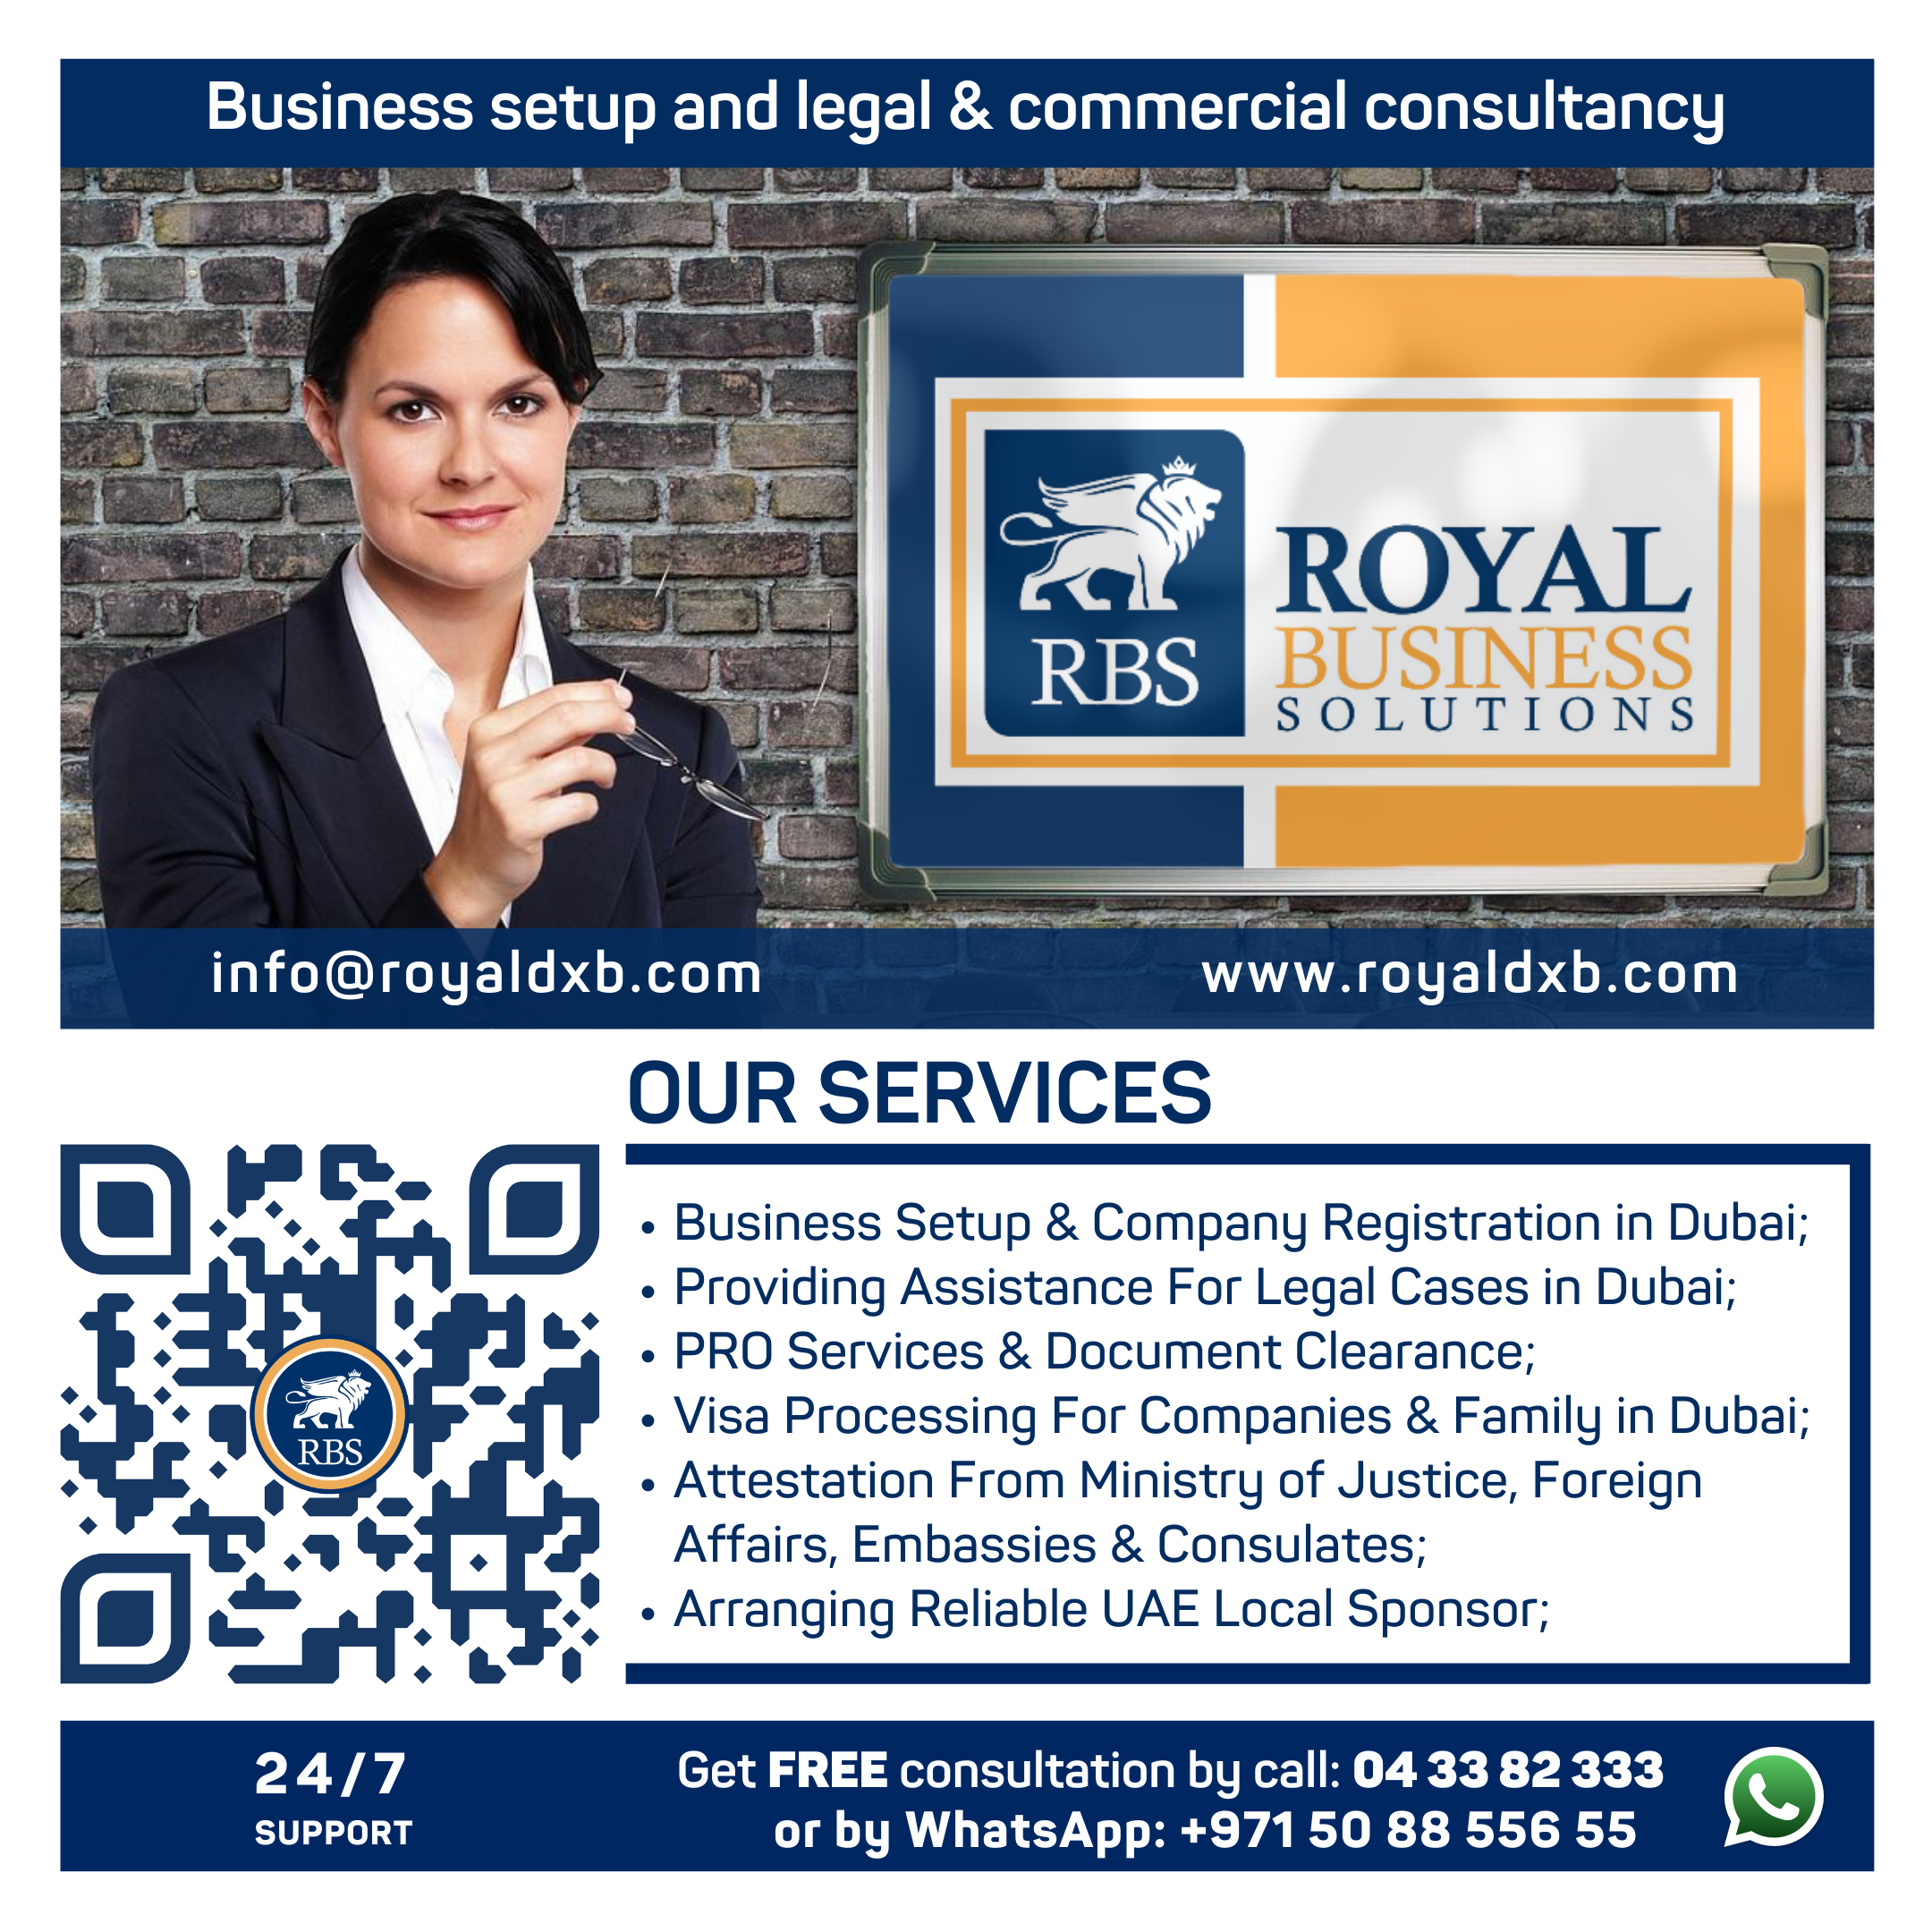 Royal Business Solutions_RBS engl— копия.png